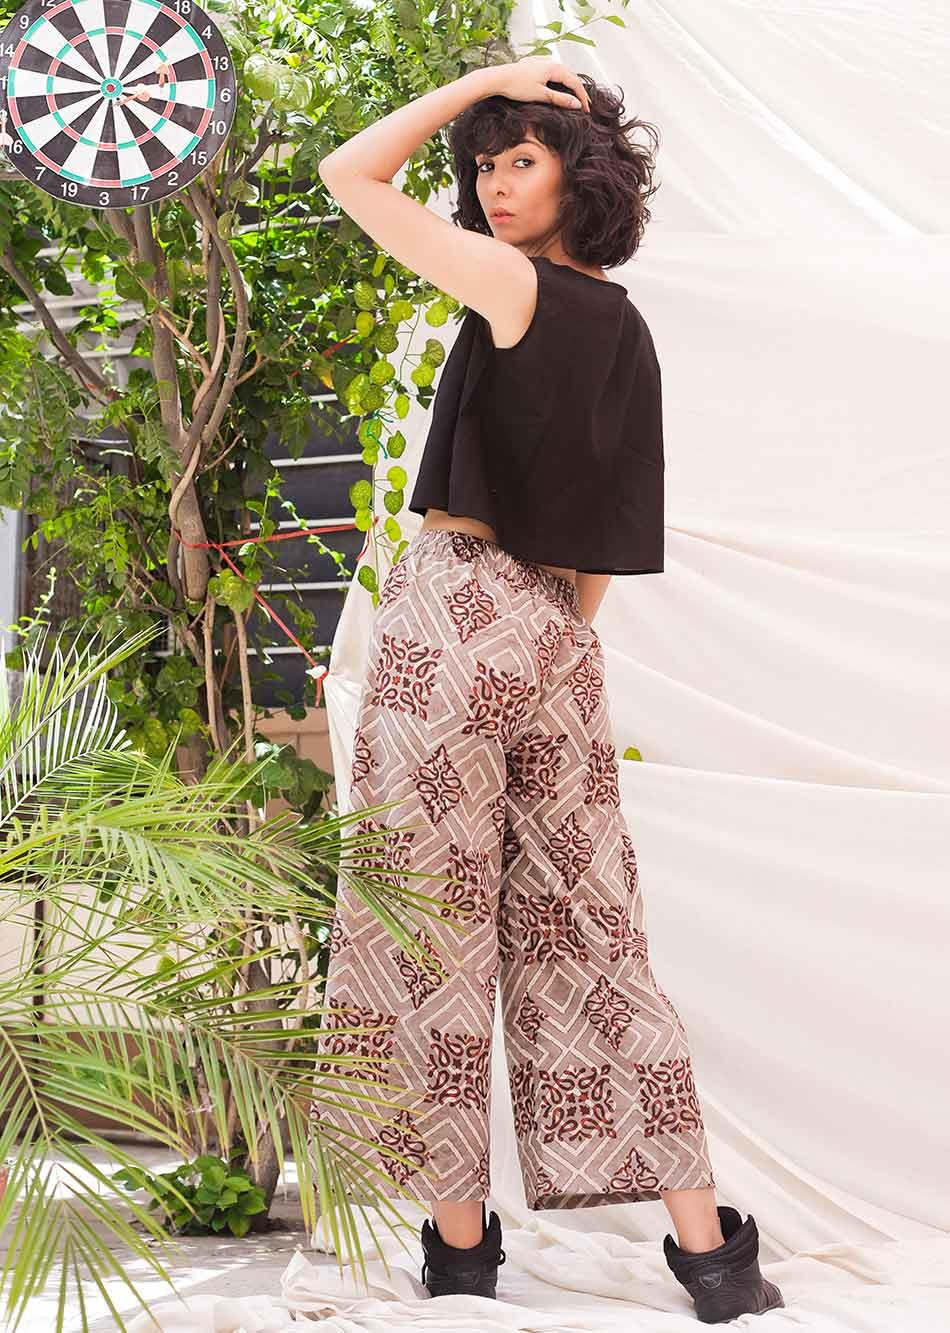 Evening Culottes - (Pants) By Jovi Fashion